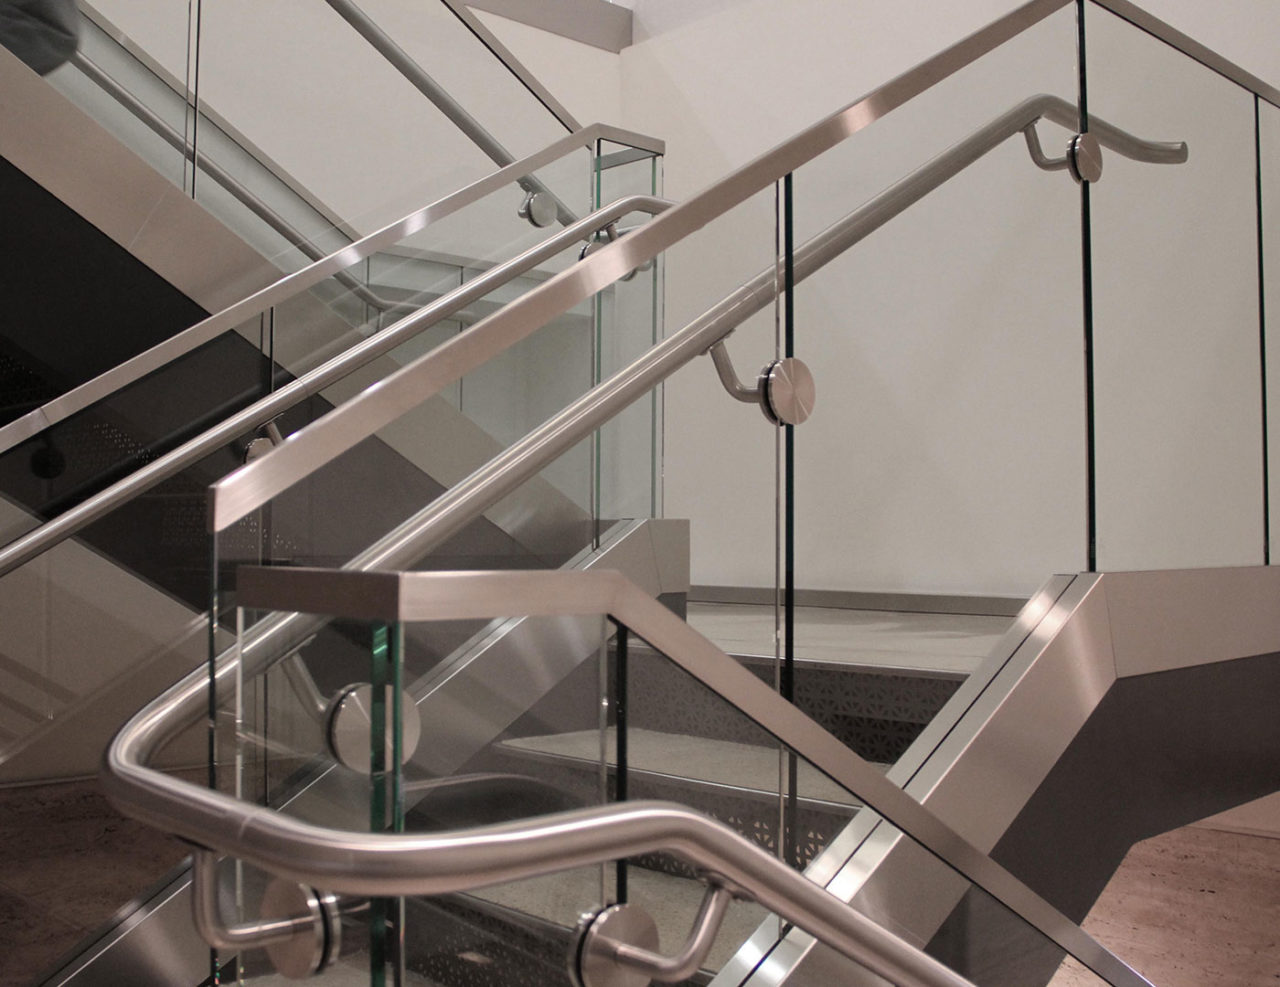 Interior stair and overlook glass railing features stainless steel cladding, top cap, and handrail.